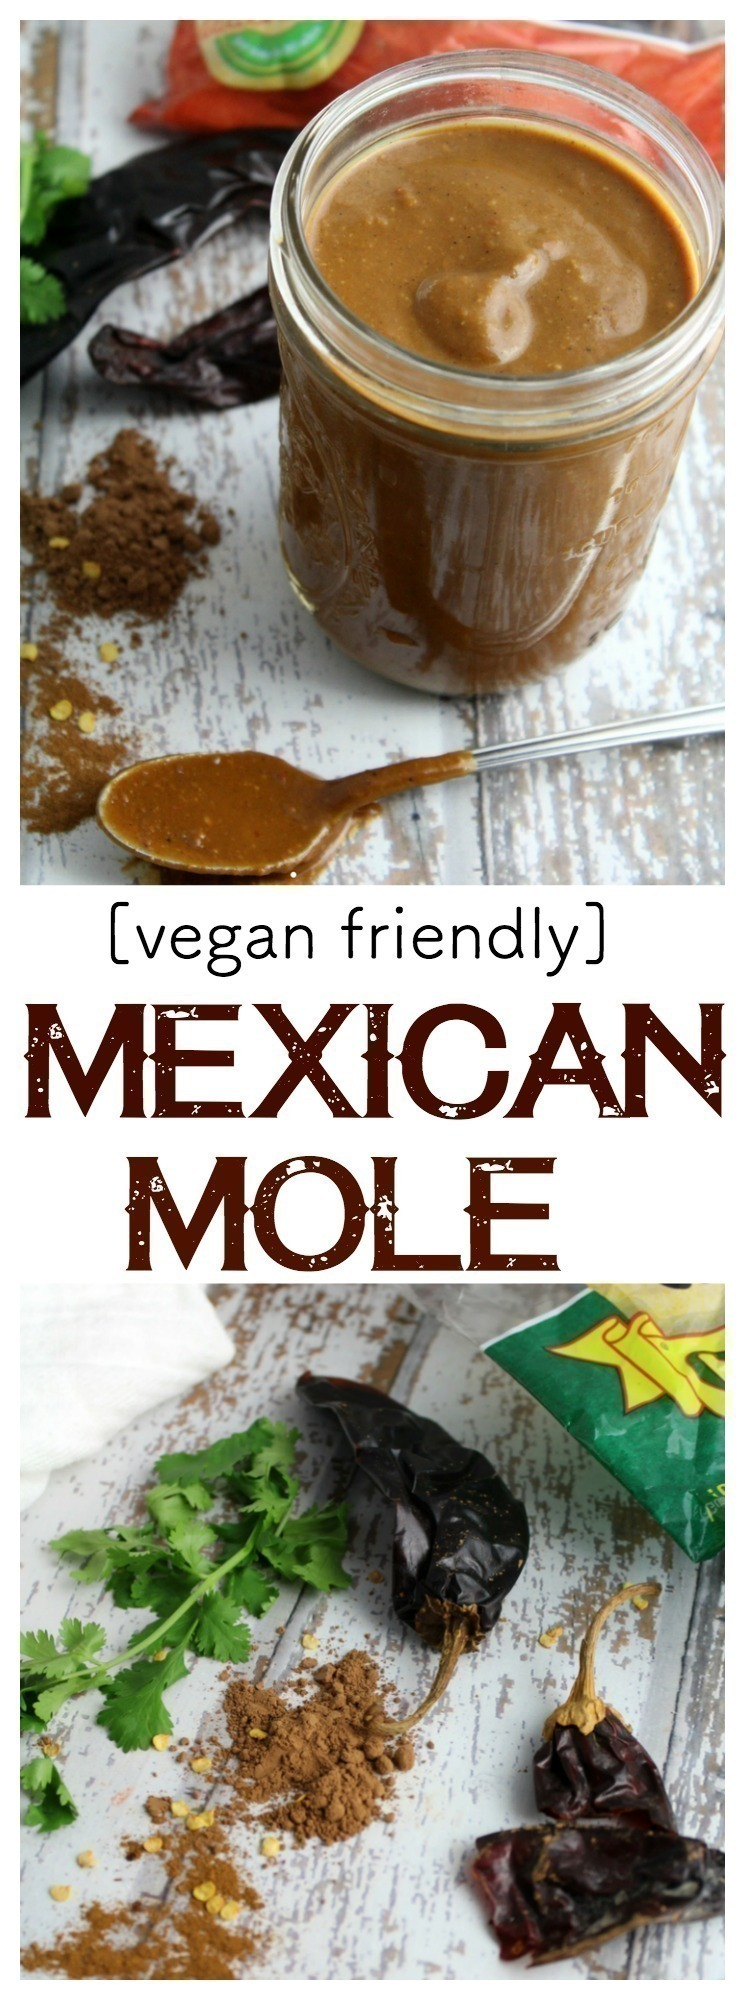 A rich, fragrant mole sauce that is wonderful on meatless enchiladas, tamales, and smothered on chicken. This sauce is vegan friendly and freezes wonderfully!    #vegan #meatless